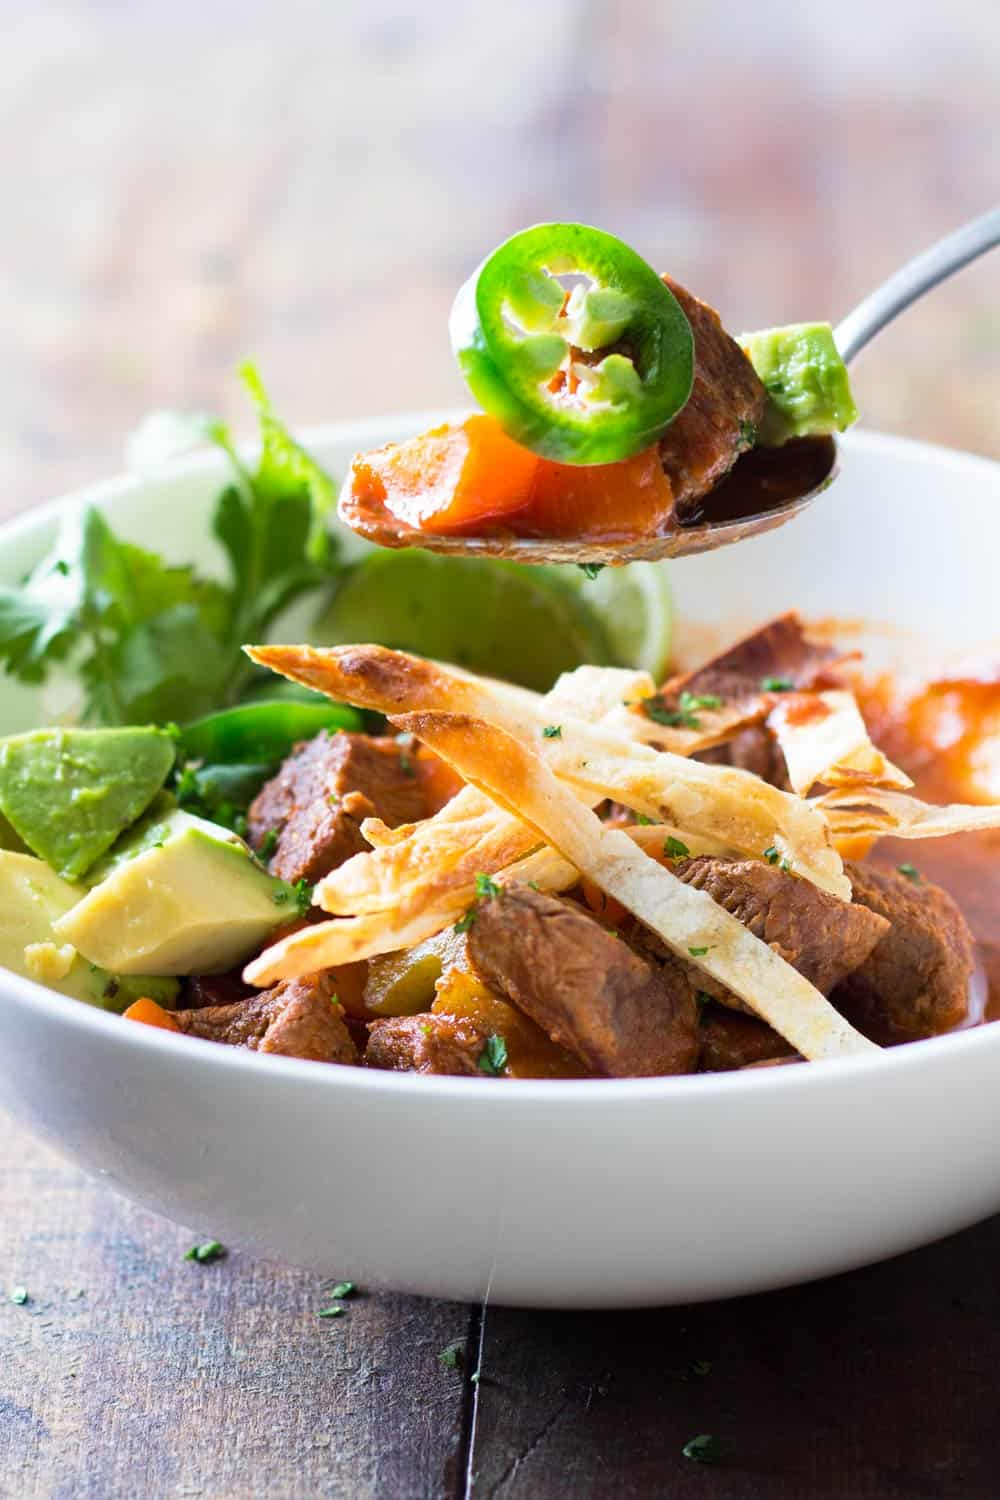 Mexican beef stew served in a white bowl and a spoonful of stew showing ingredients.